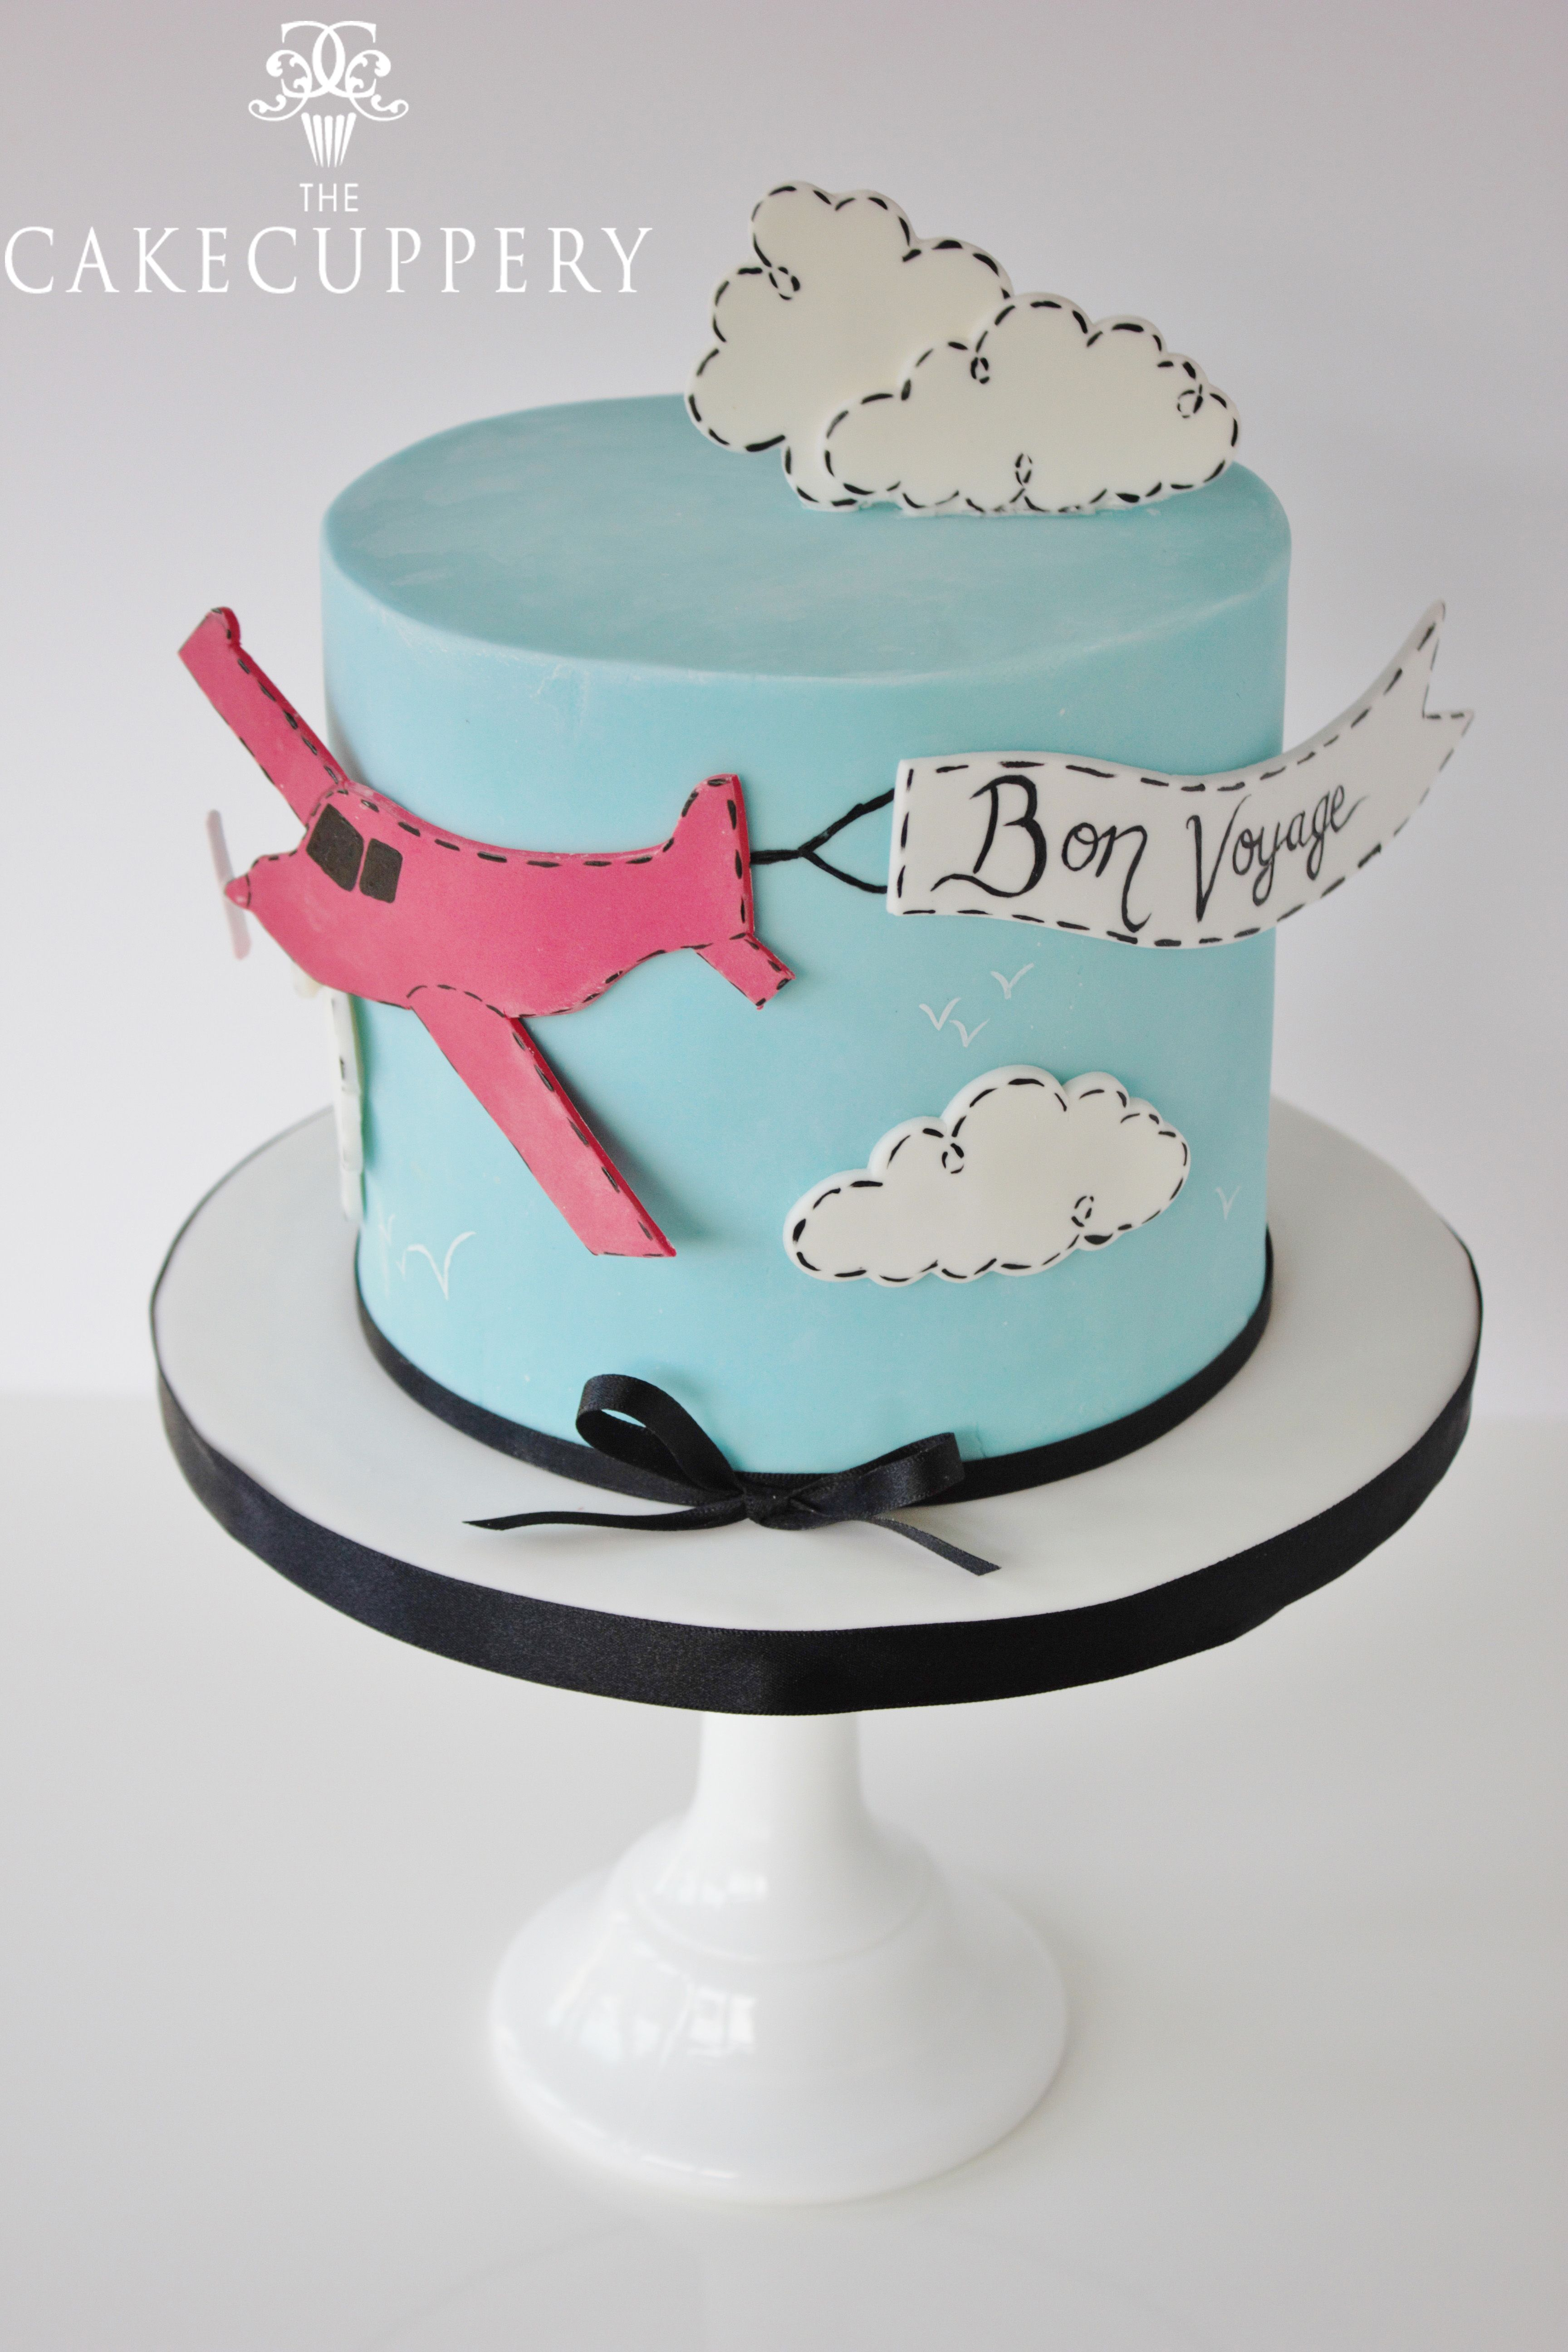 Bon Voyage Cake by The Cake Cuppery - For all your cake decorating ...